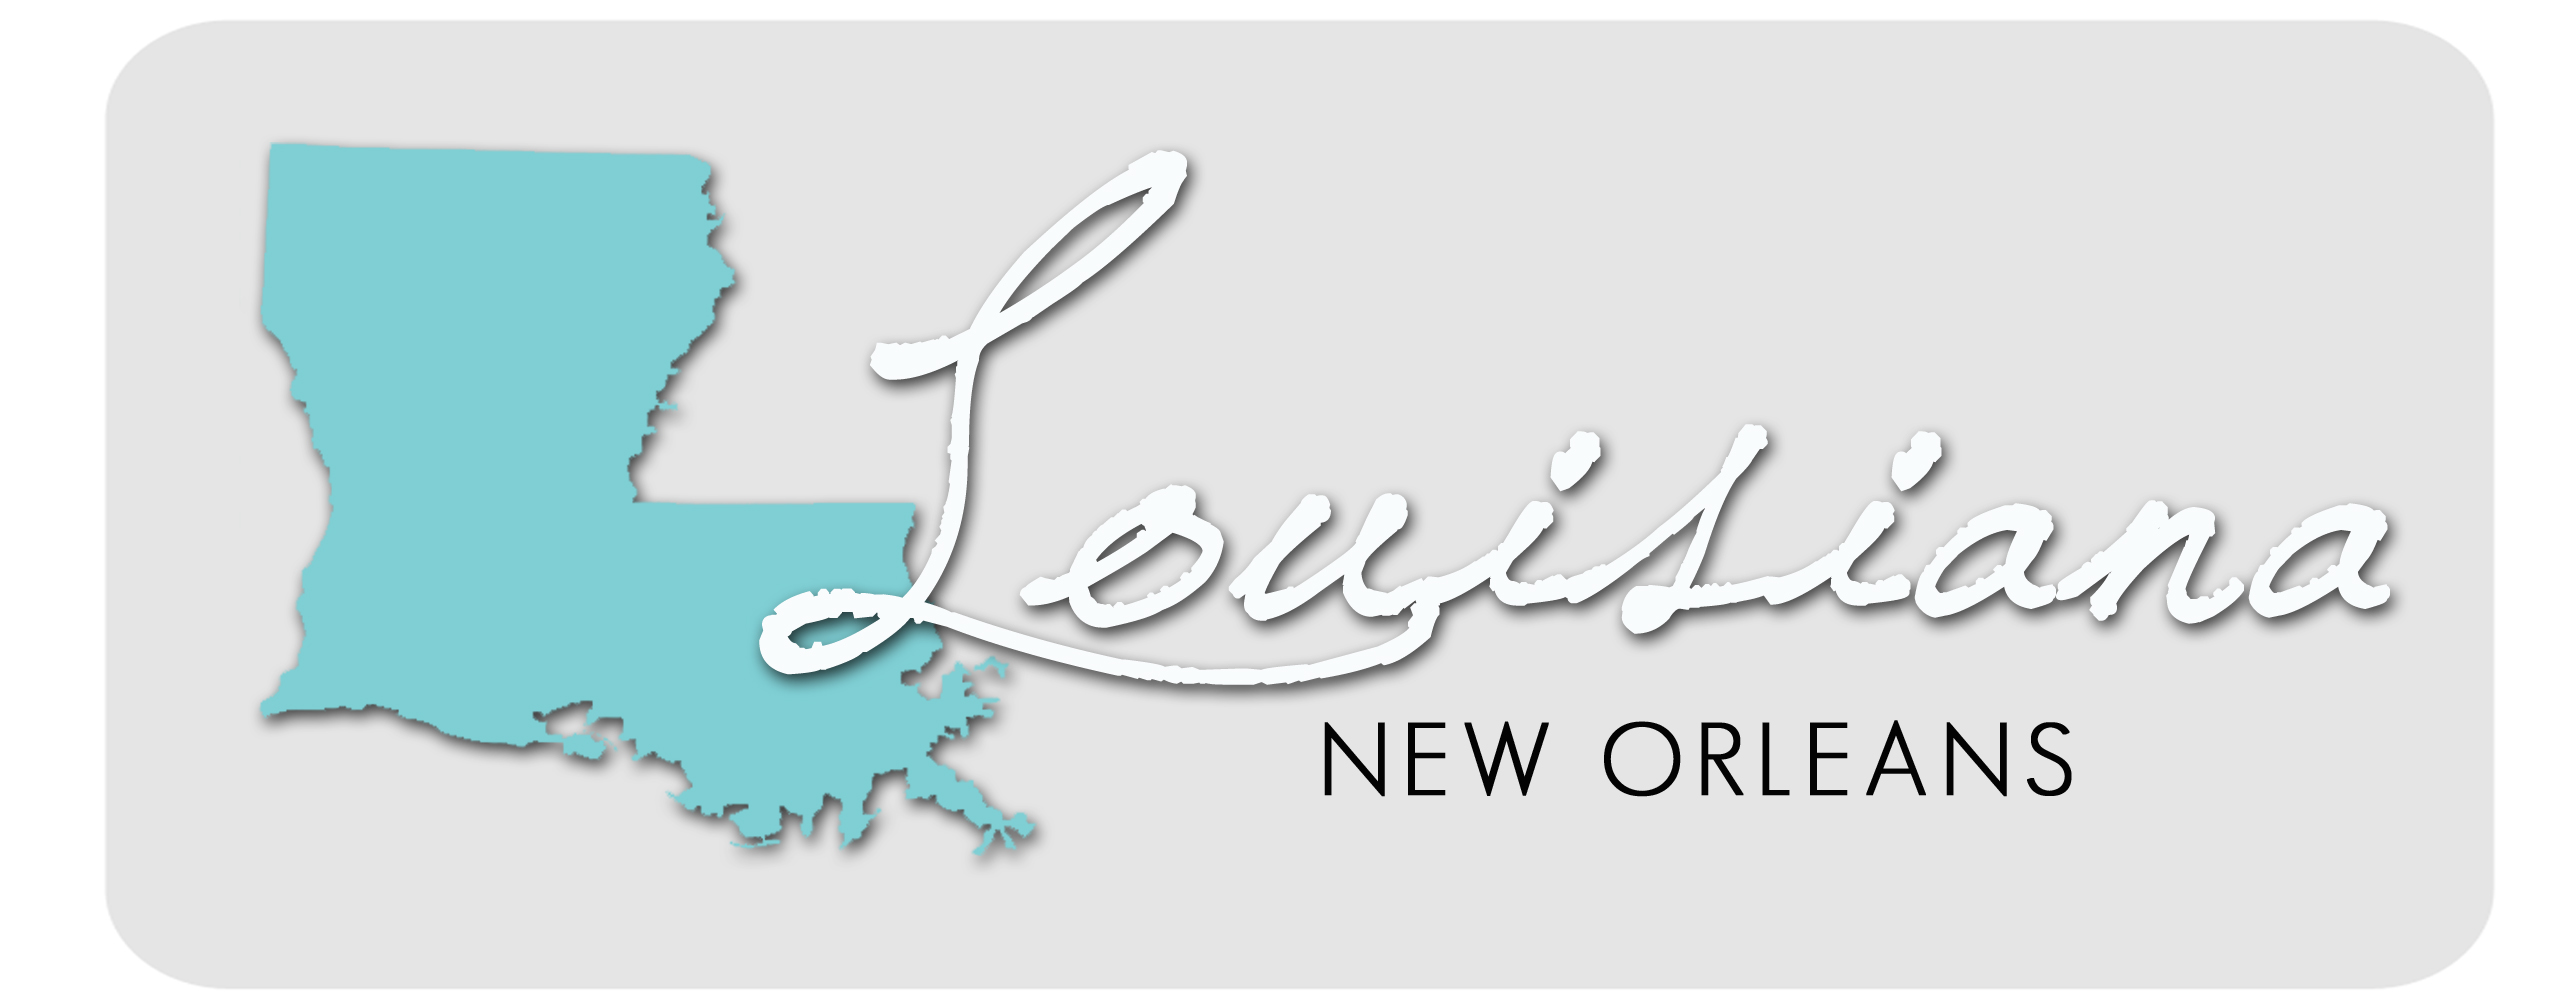 New Orleans health insurance